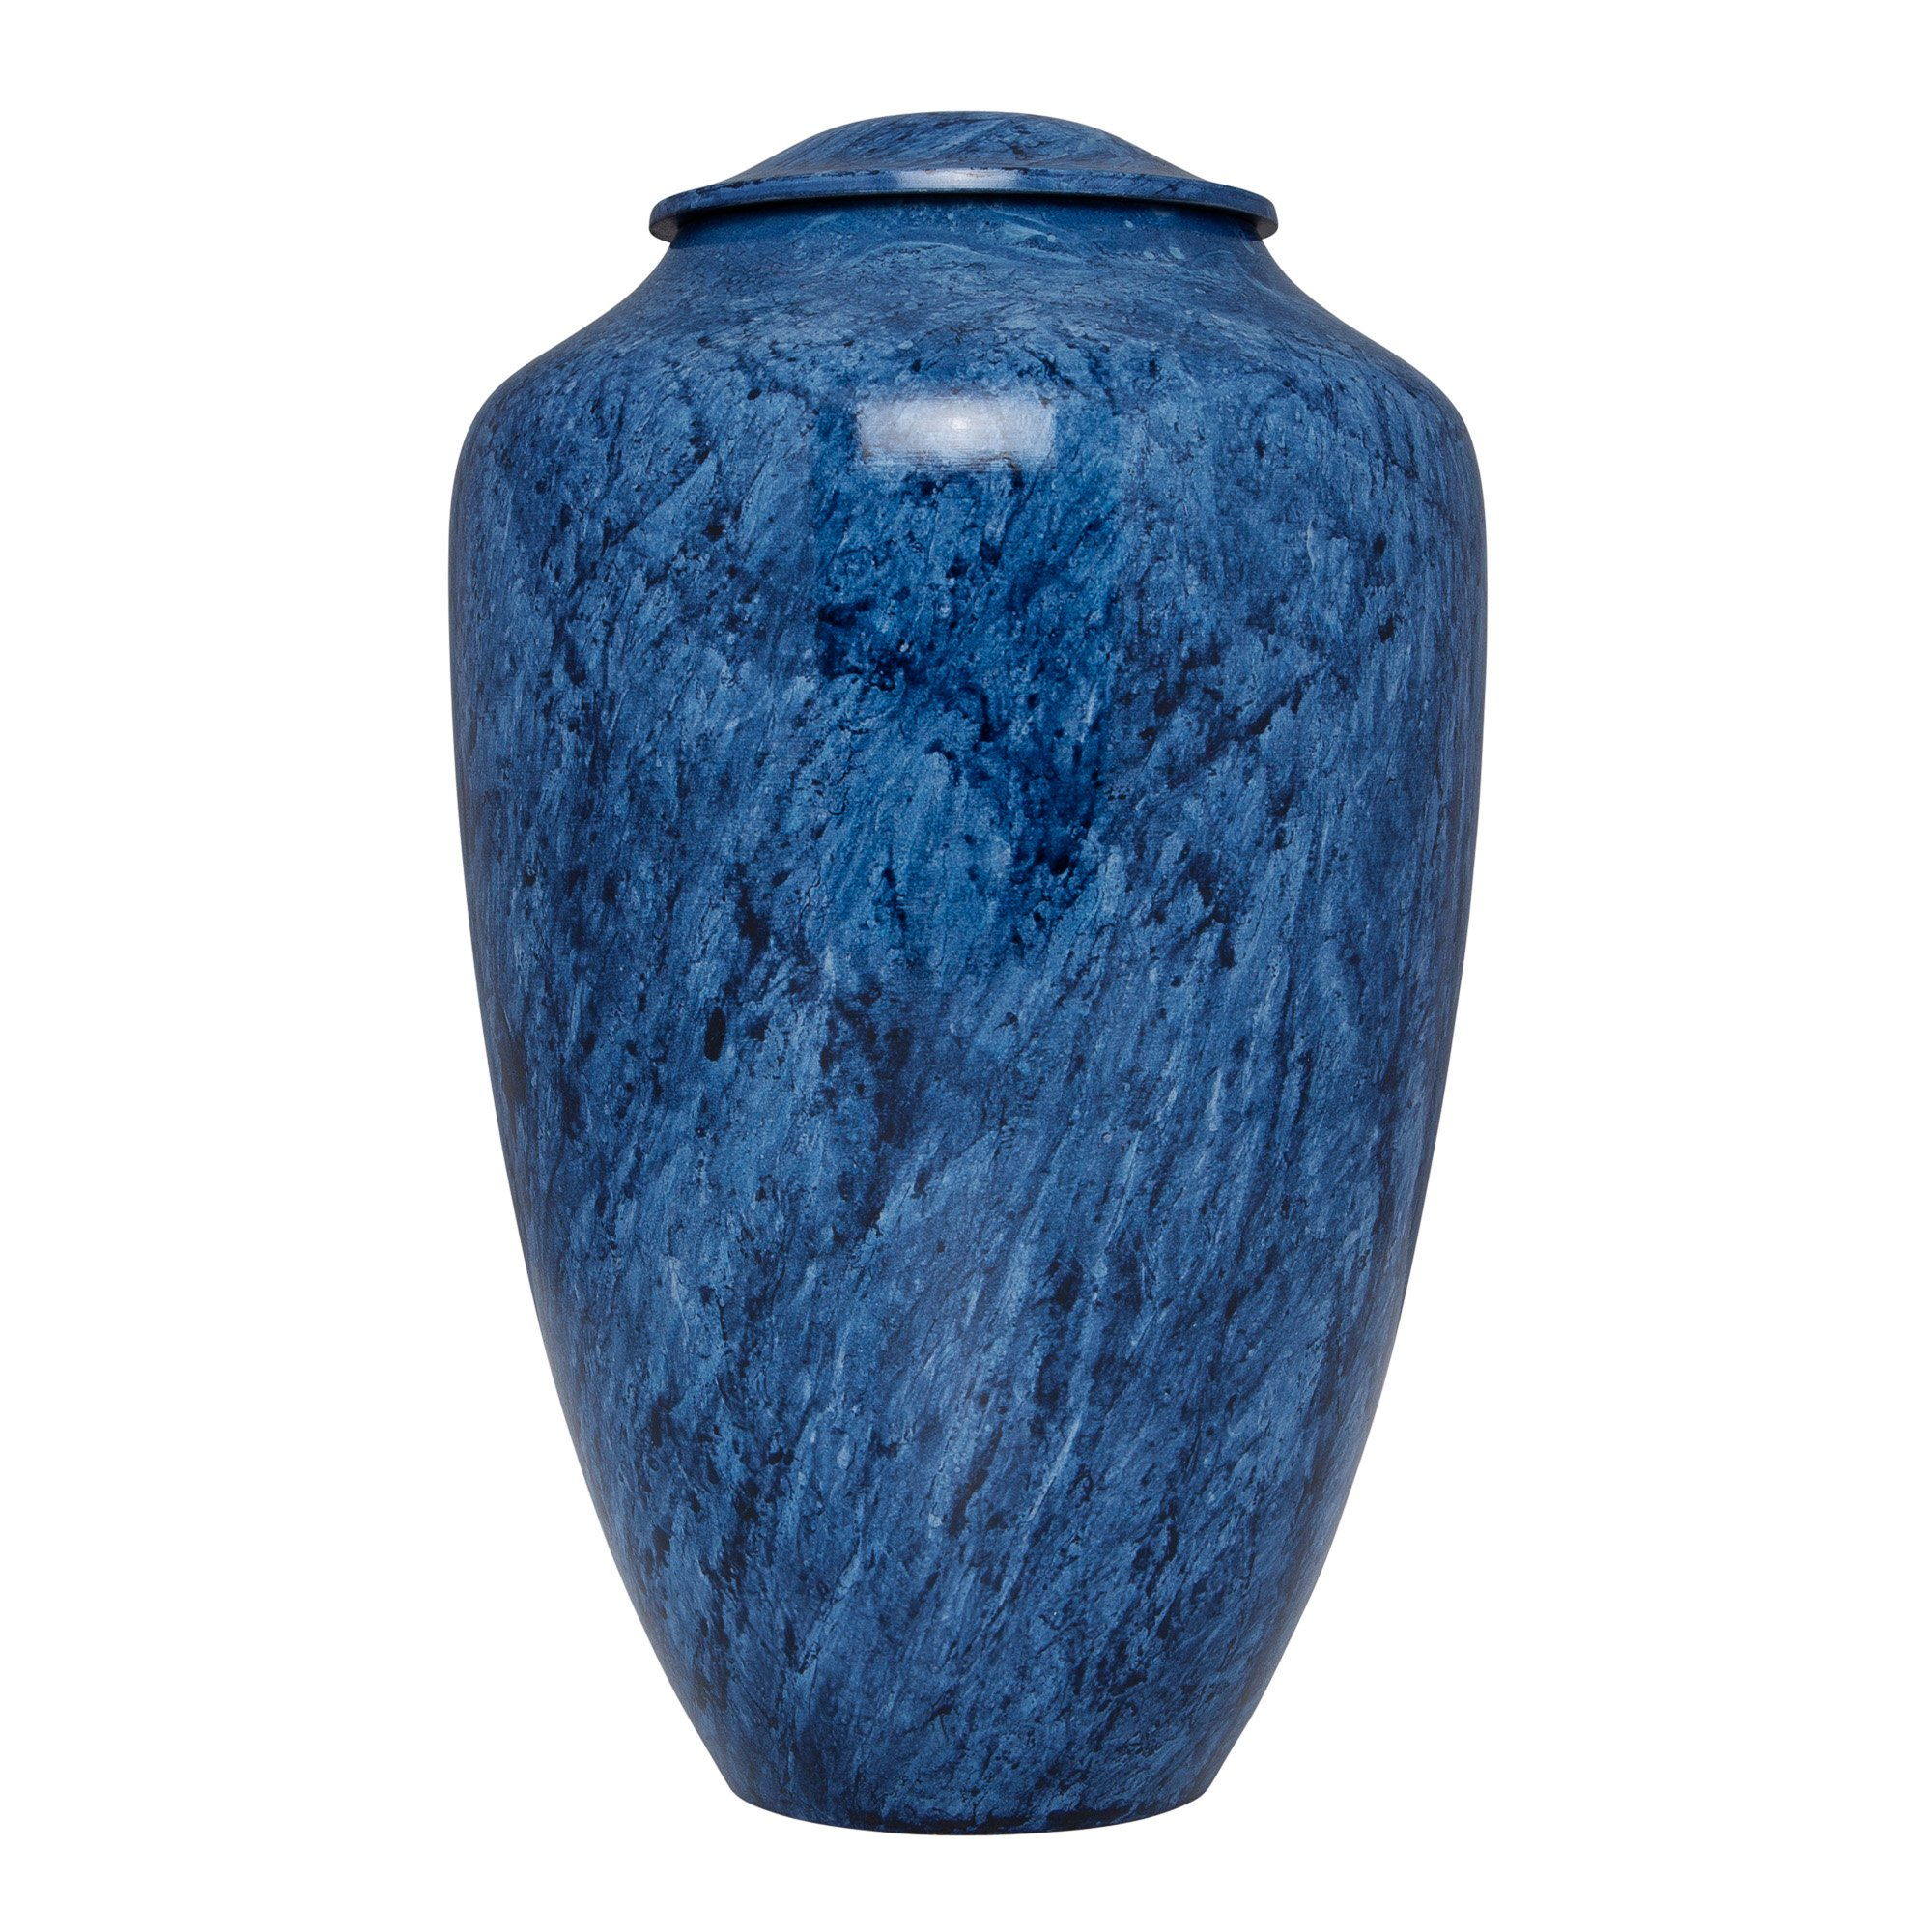 Blue Funeral Urn by Liliane Memorials - Cremation Urn for Human Ashes - Hand Made in Brass - Suitable for Cemetery Burial or Niche - Large Size fits remains of Adults up to 200 lbs - Ambleu Model by Liliane Memorials (Image #1)